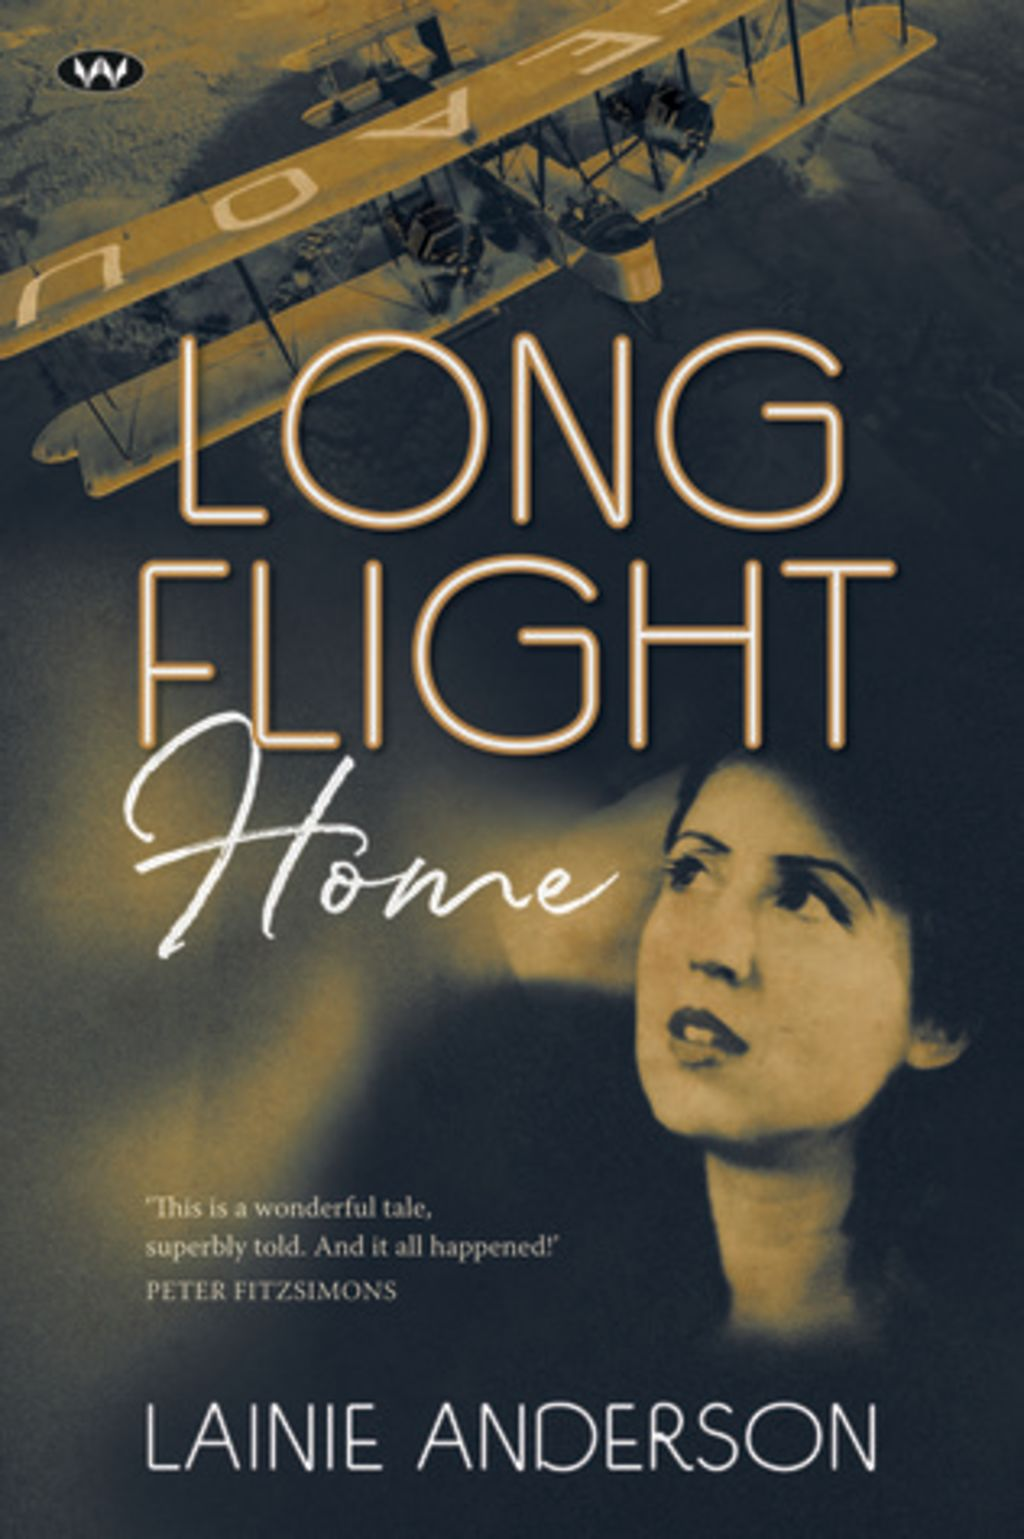 Long FLight Home by Lainie Anderson.